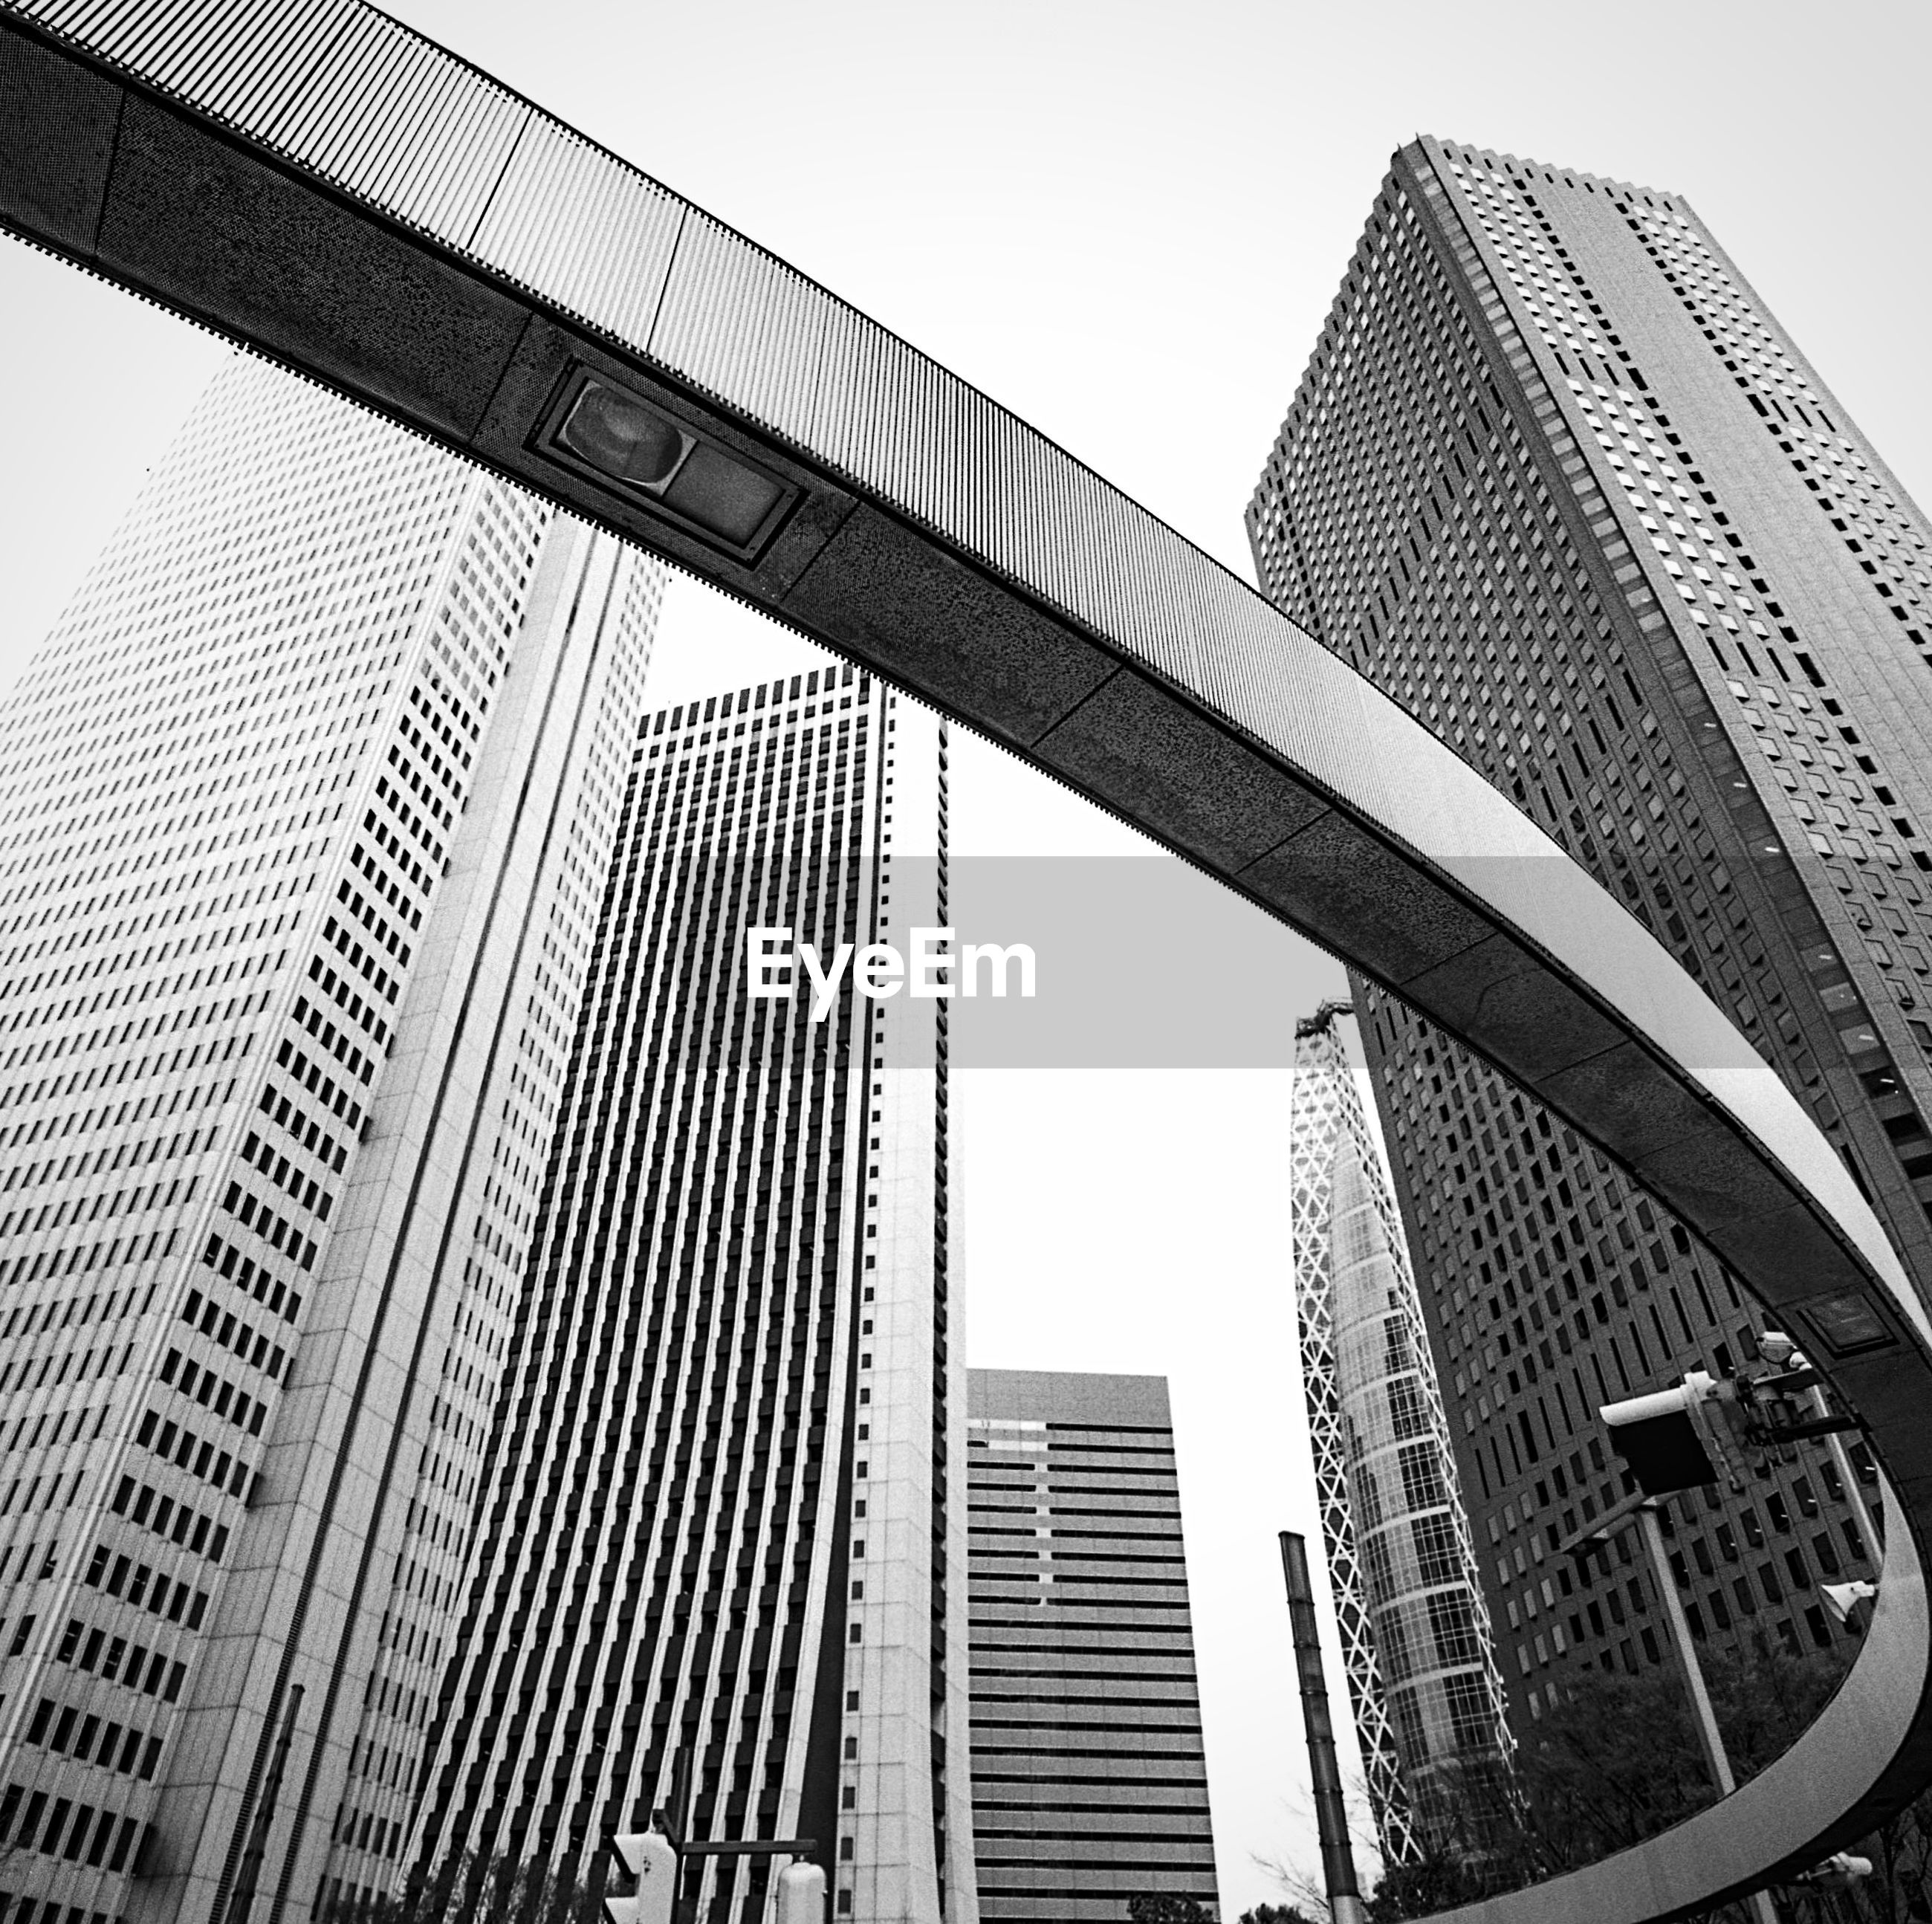 architecture, built structure, building exterior, skyscraper, city, modern, office building, tall - high, low angle view, clear sky, tower, building, capital cities, sky, financial district, glass - material, reflection, day, city life, tall